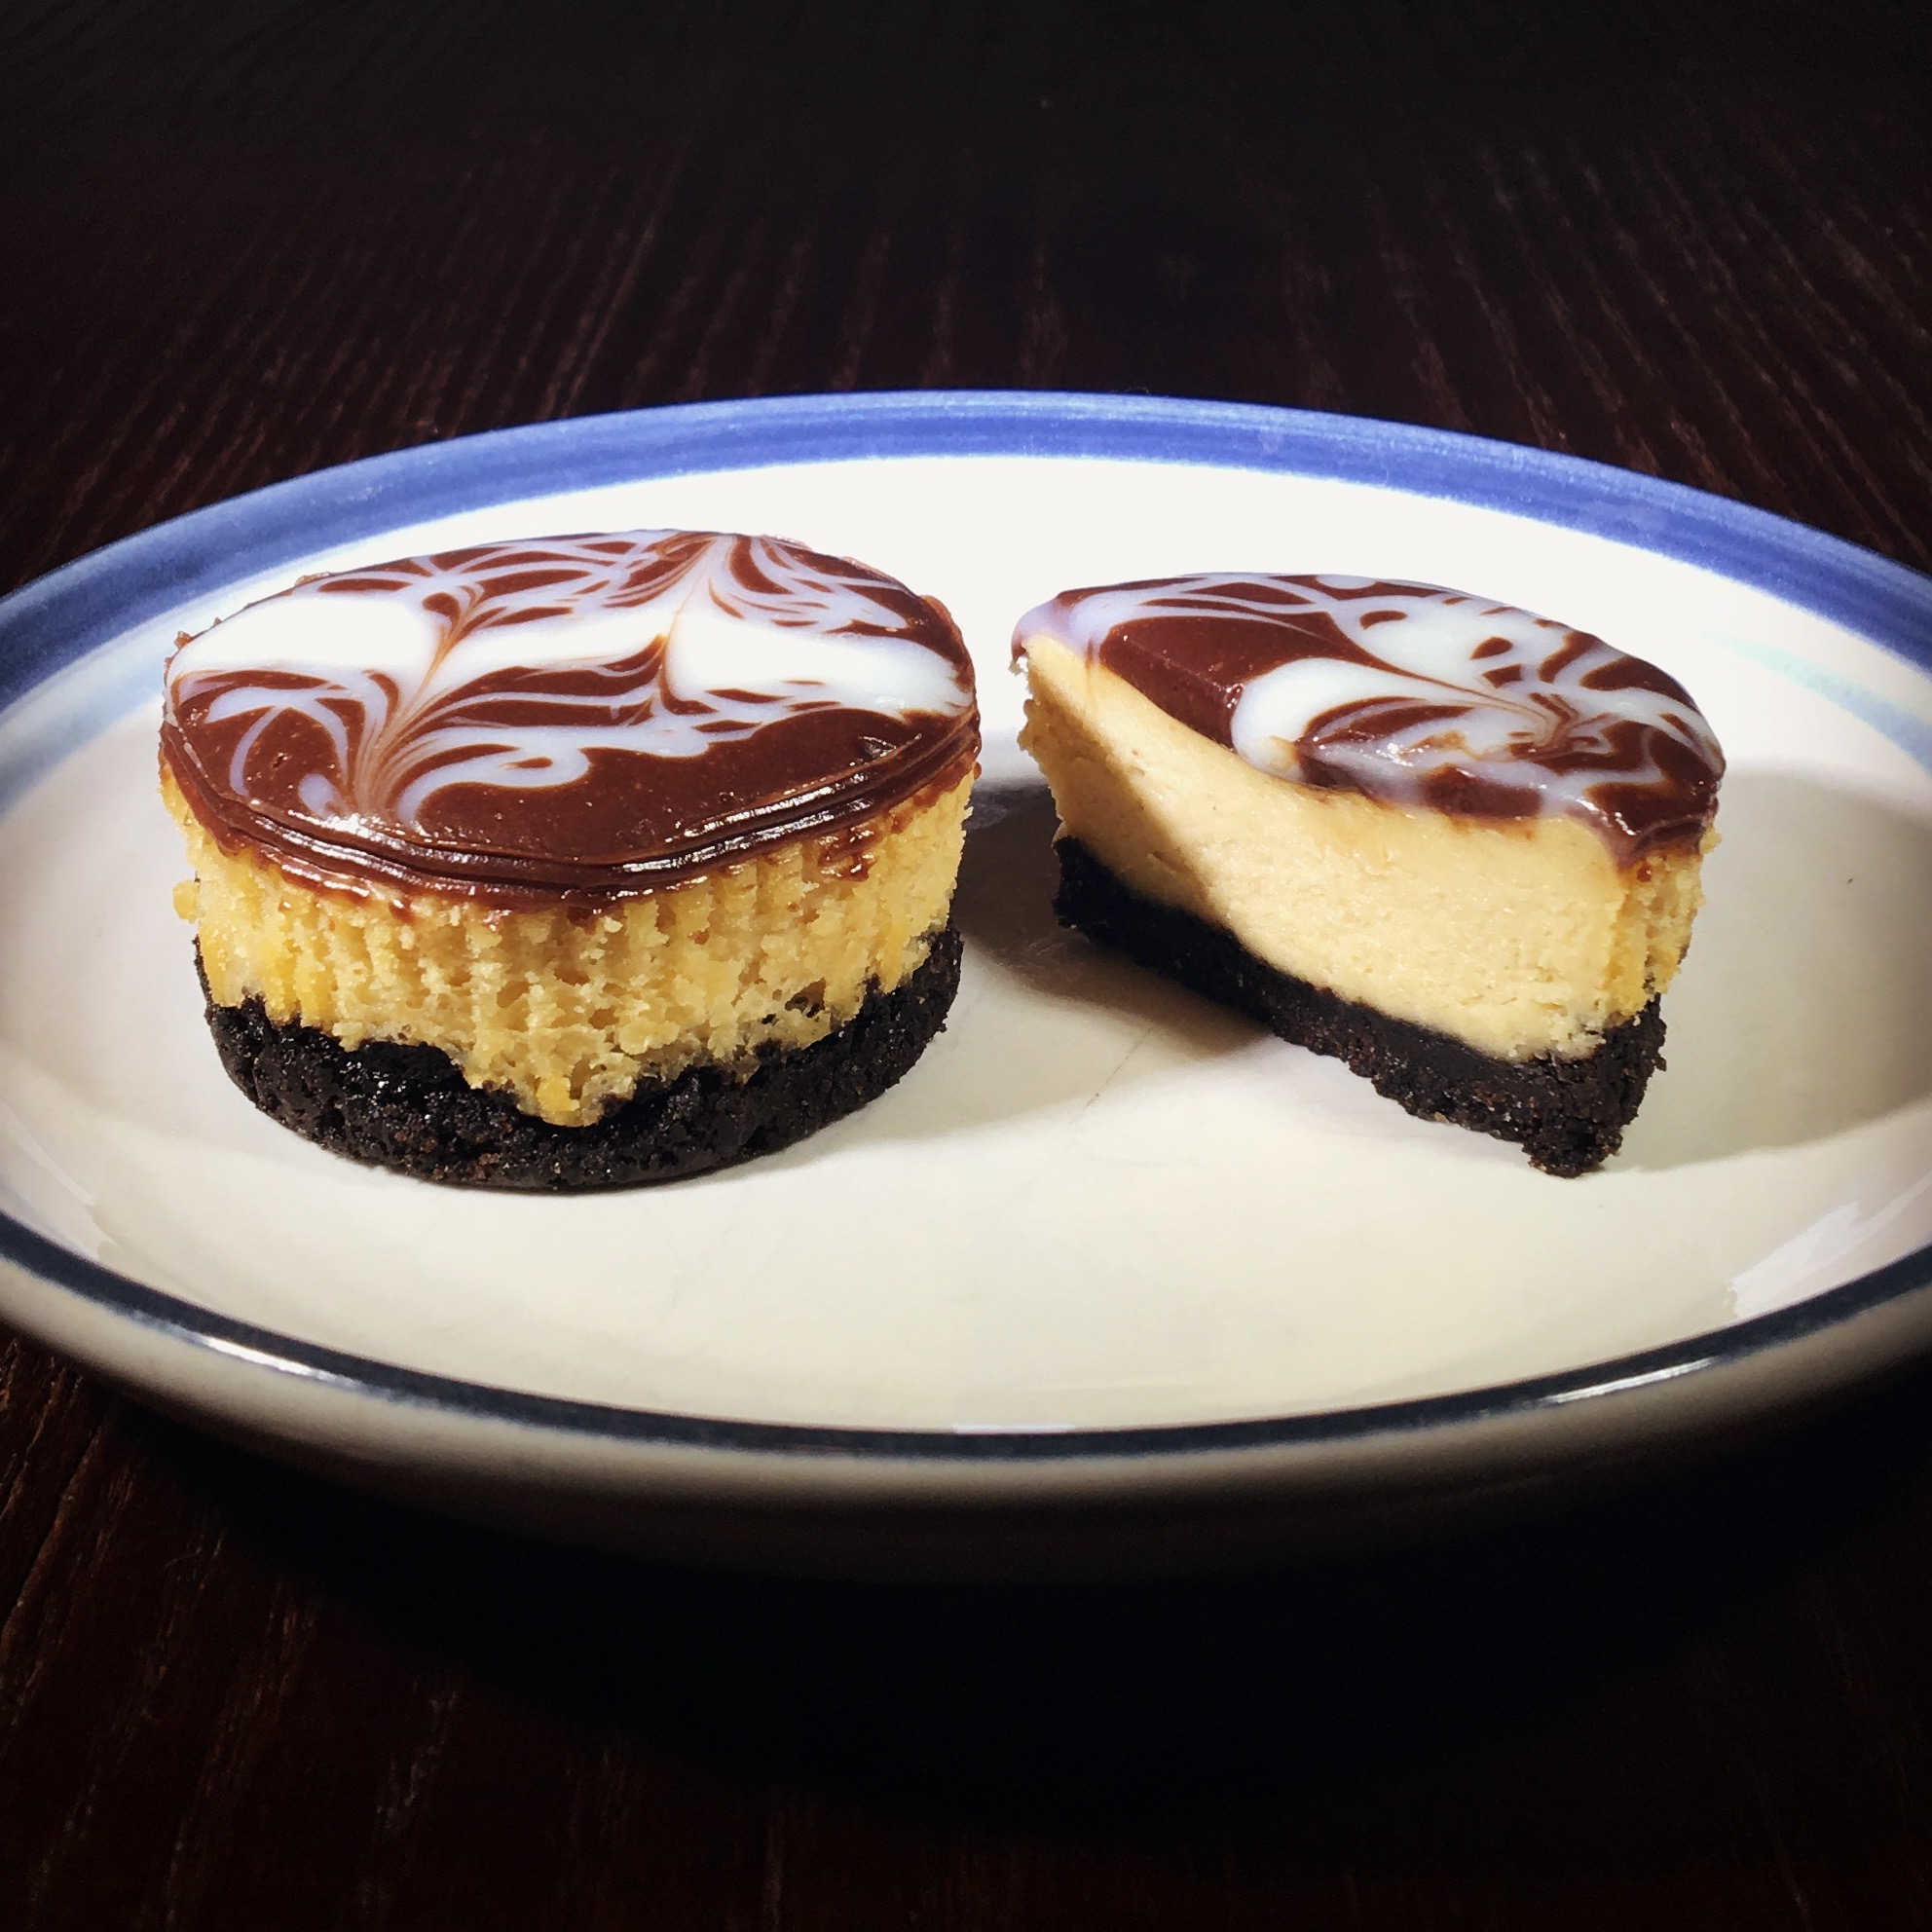 Oreo and Peanut Butter Cheesecake